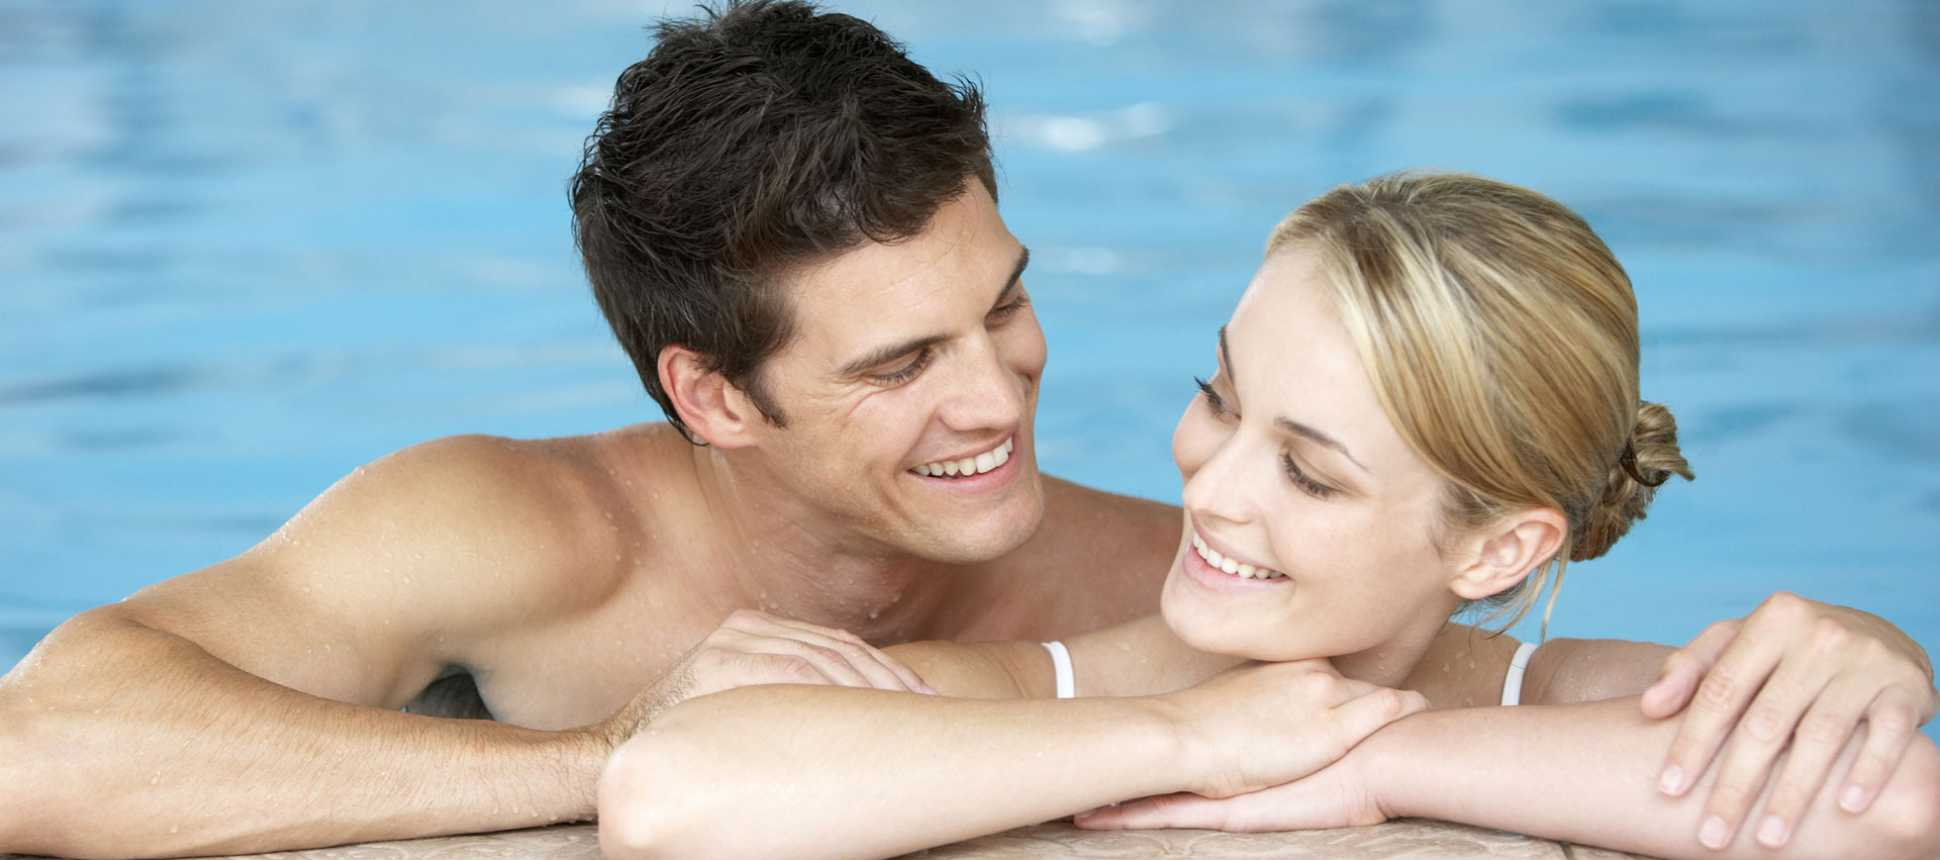 Empfehlung Schwimmbad Service Swimming Pool Wartung